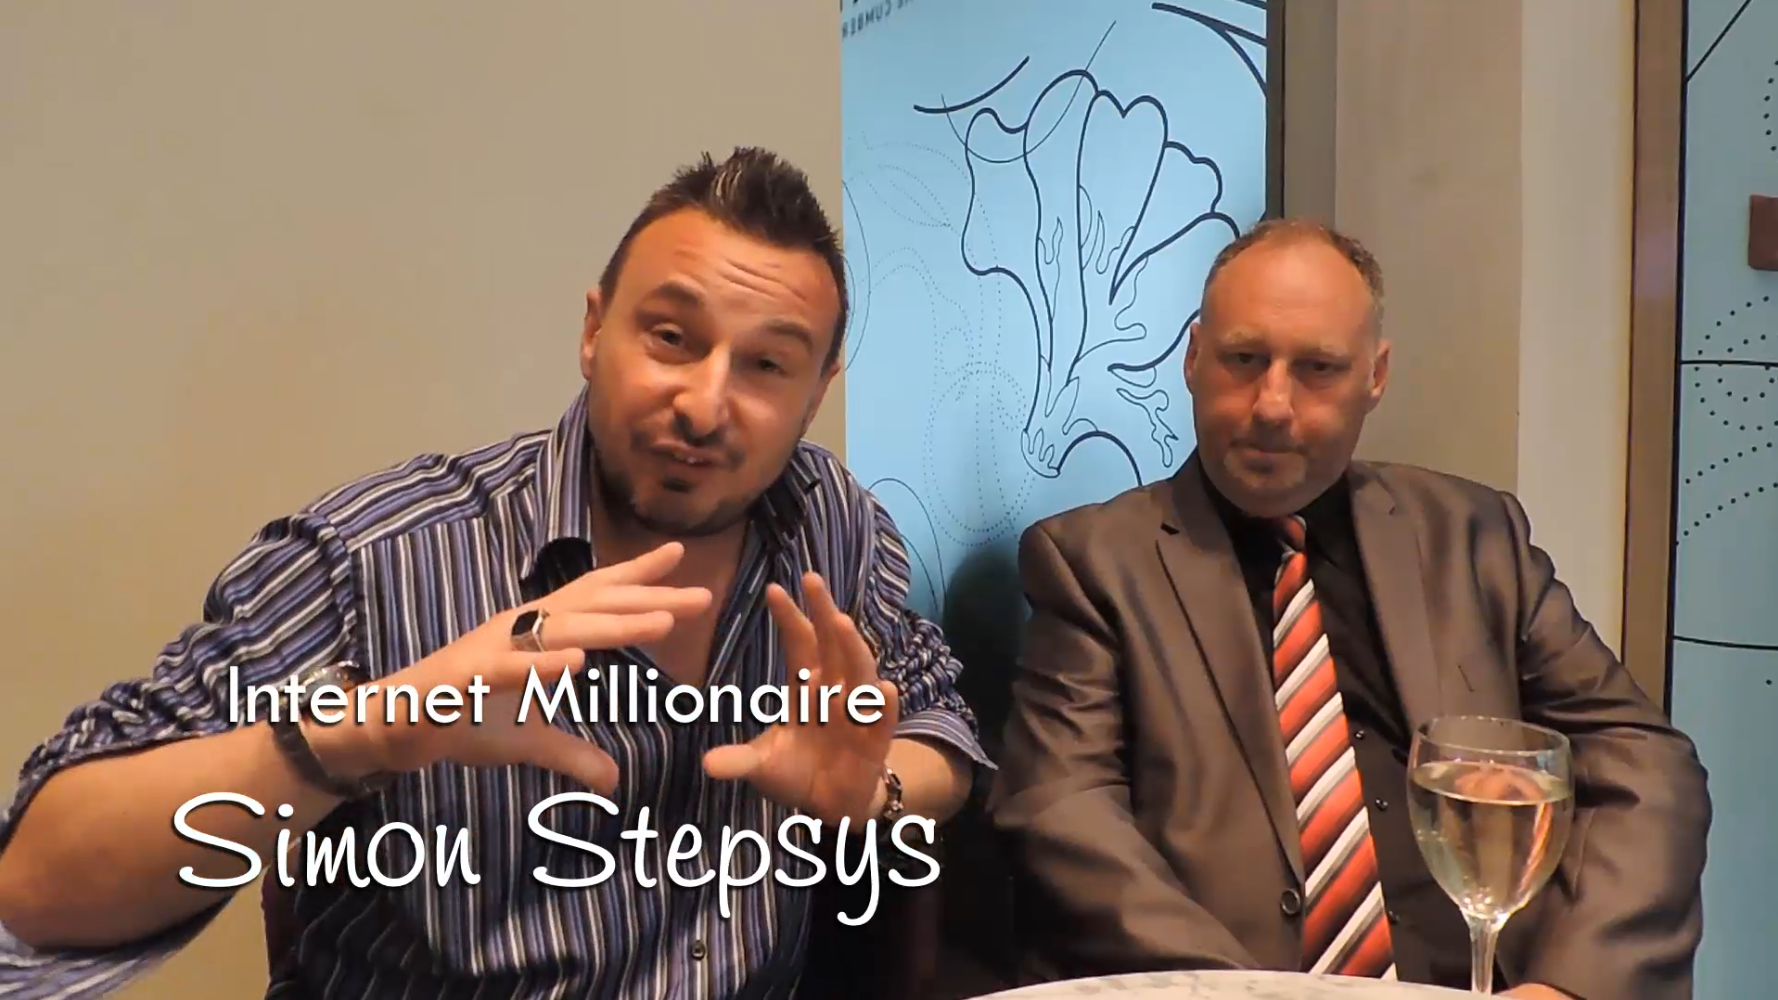 interviews andrew stanleys map wealth com interview diamond team leader from cologne rainer barton